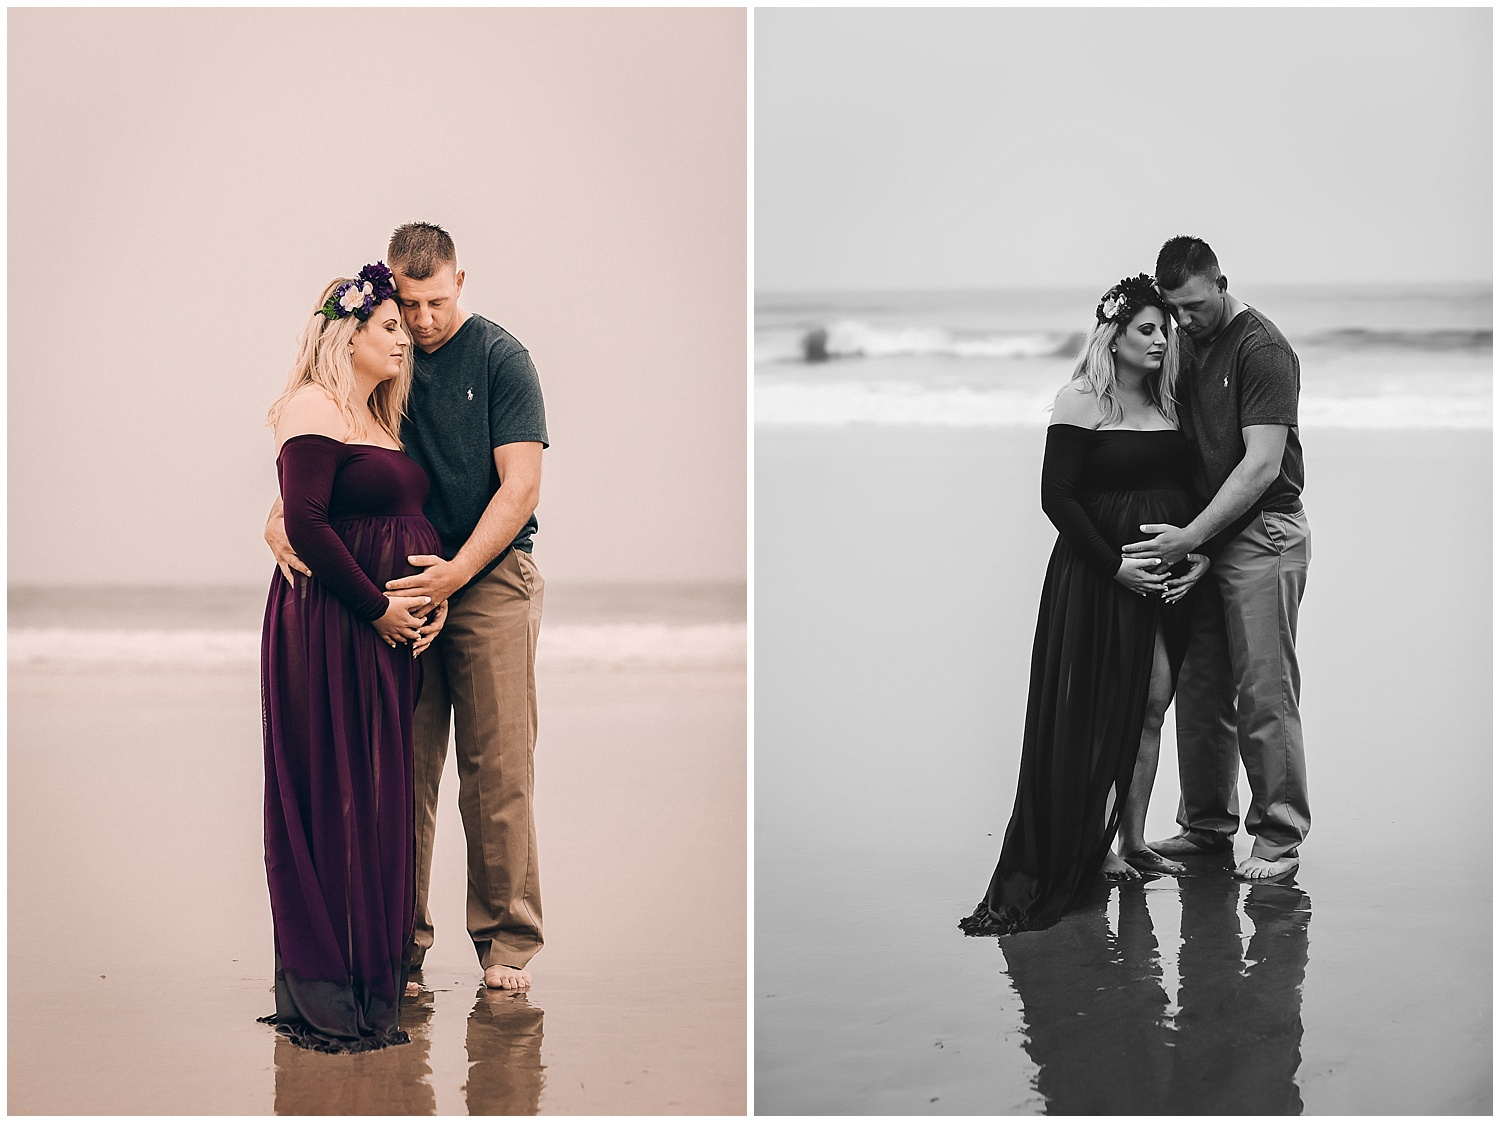 camp pendleton maternity photograher maternity on the beach photography session mother to be photo shoot family on the beach maternity photo session